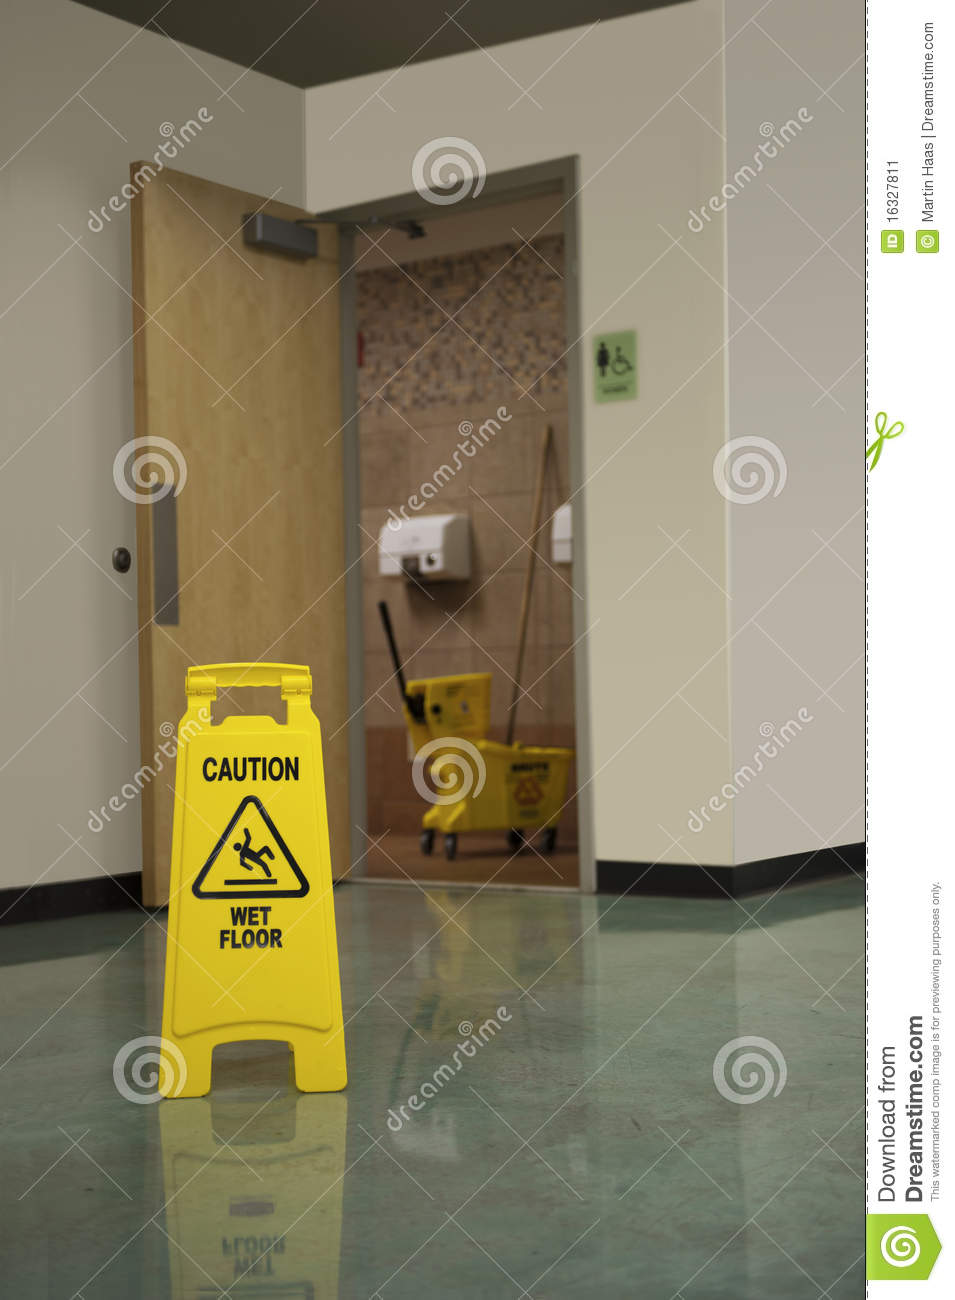 Restroom Mop Safety Stock Image Image 16327811